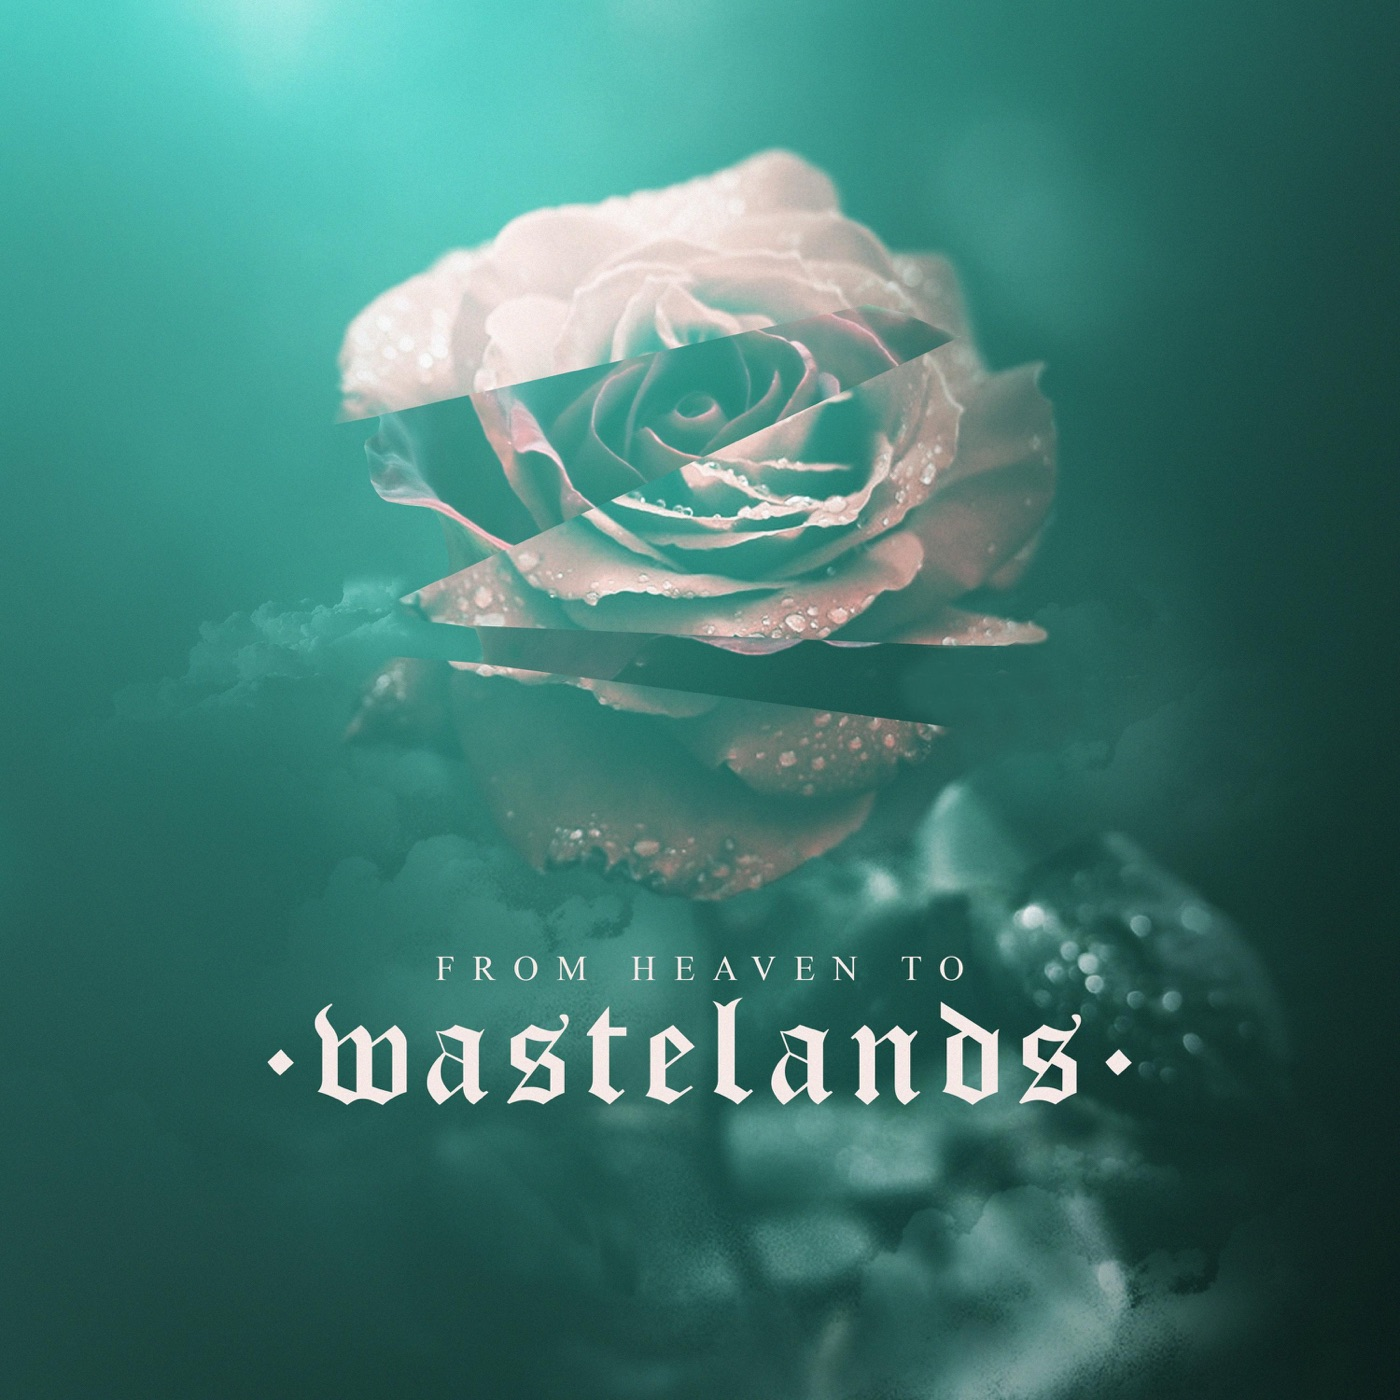 Wastelands - From Heaven To Wastelands (2018)